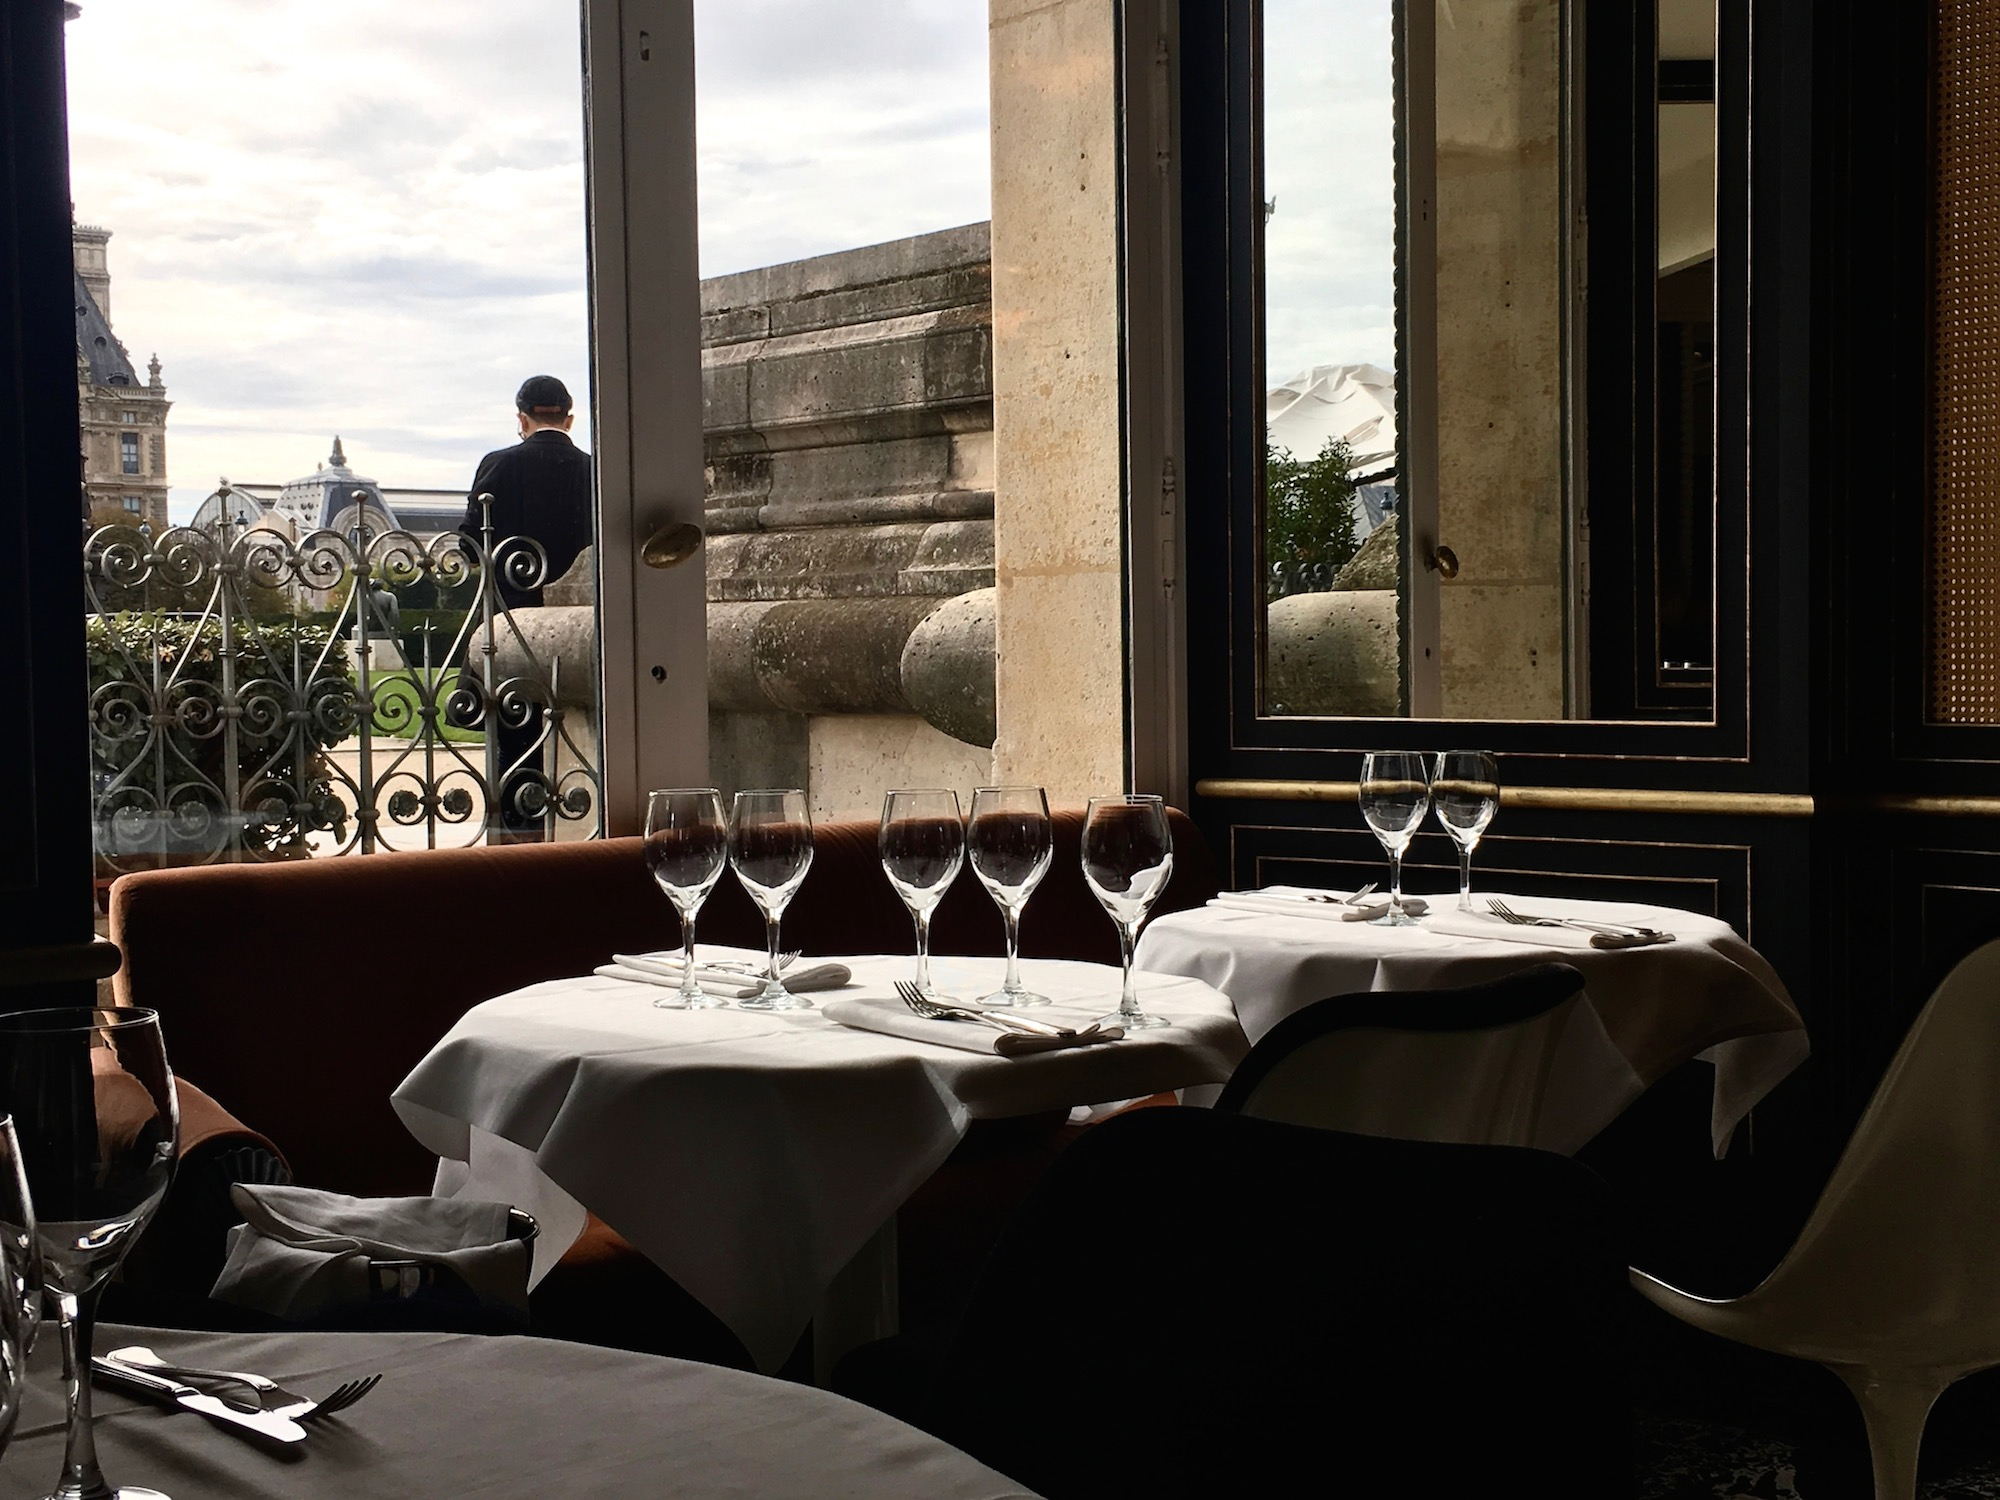 A table at Loulou restaurant in Paris, with a view of the nearby square out of the window.